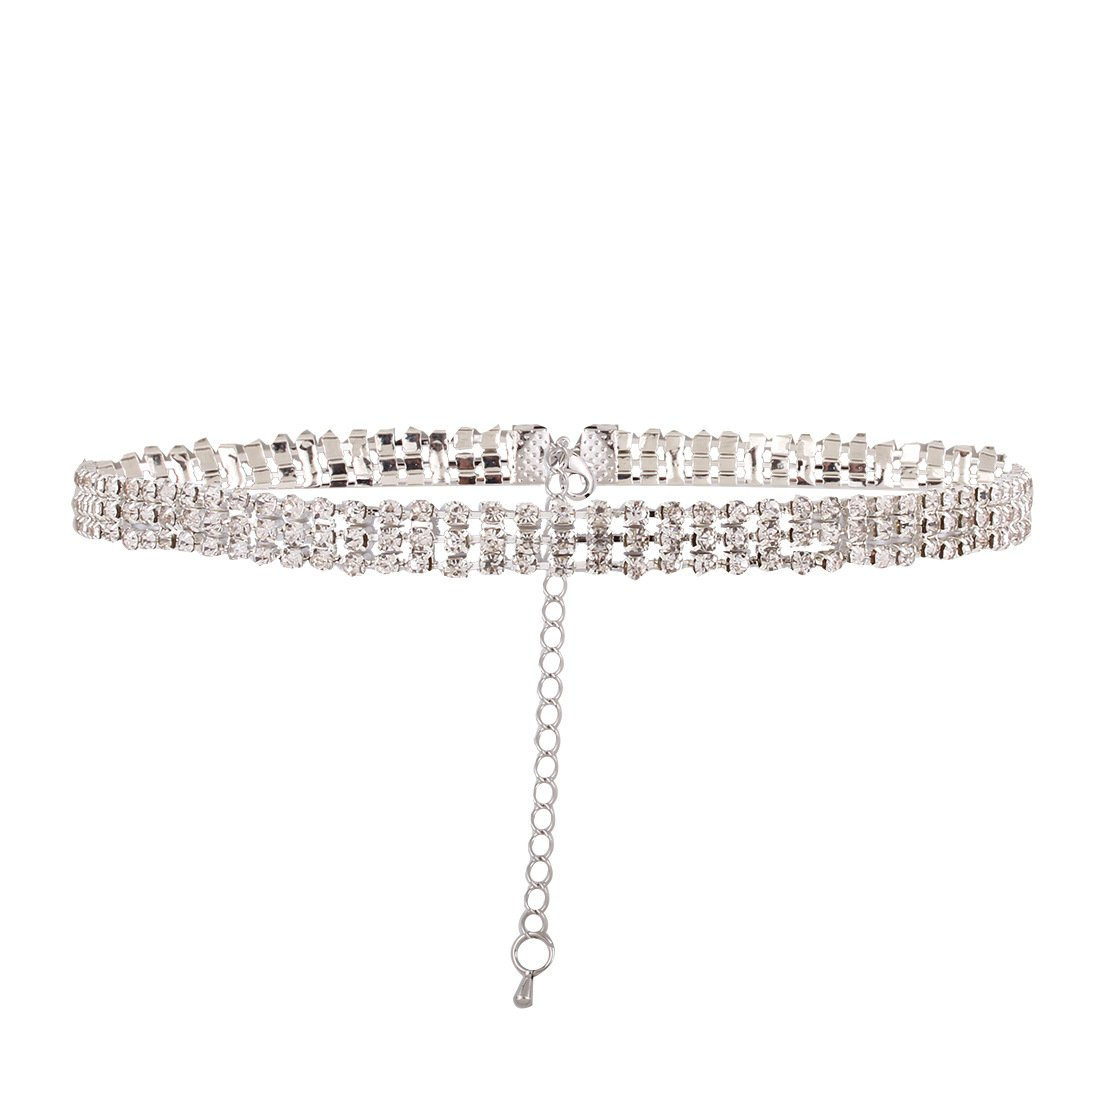 Kissweet Chunky Women Rhinestone Choker Necklace 3 Row Silver Bling Crystal Statement Collar Chain for Wedding Bridal Dancer (Silver)